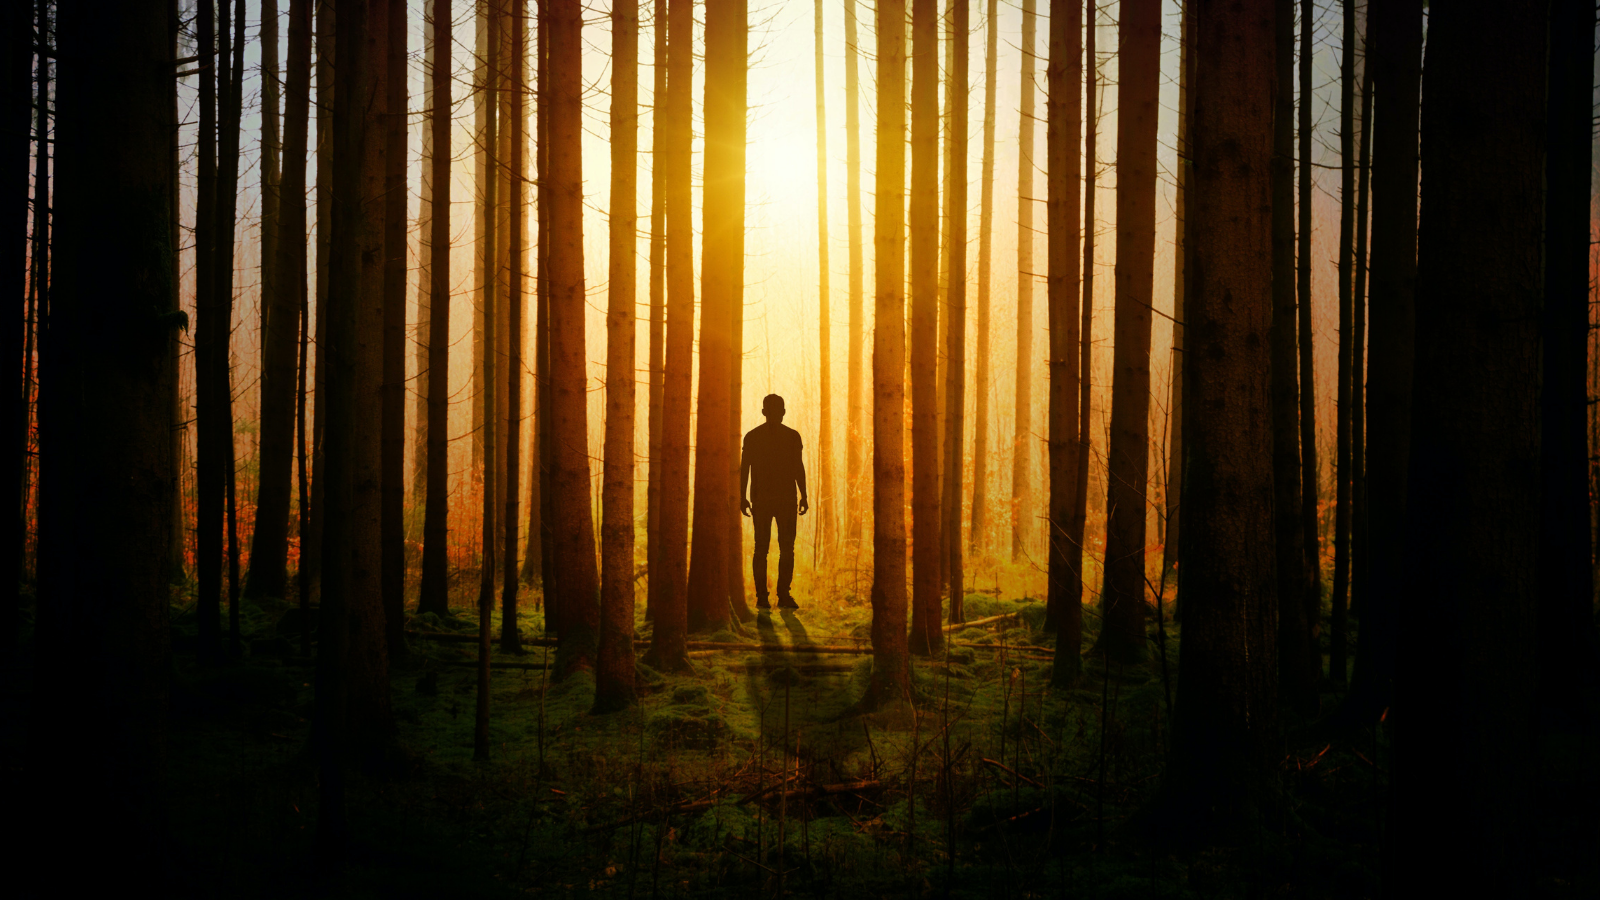 person in woods at night